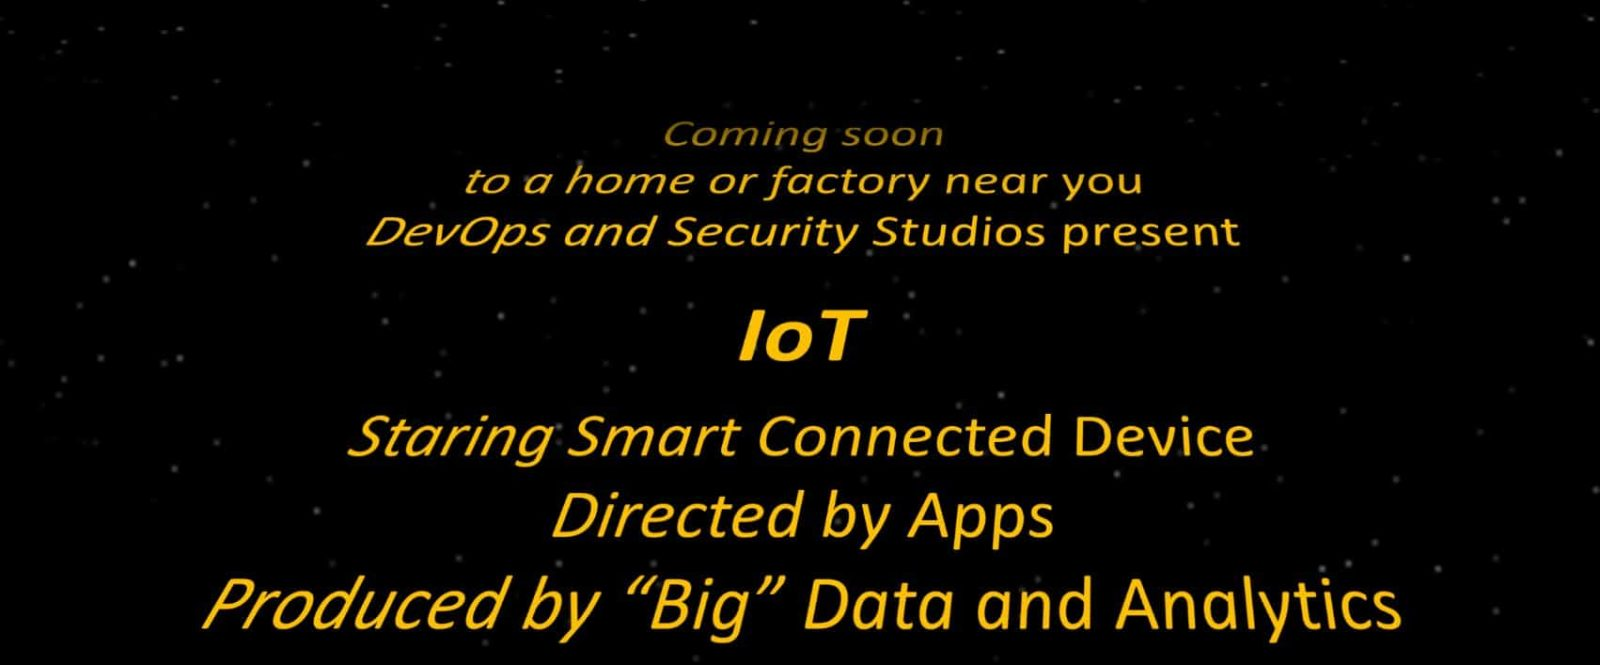 Behind the Scene with the Internet of Things